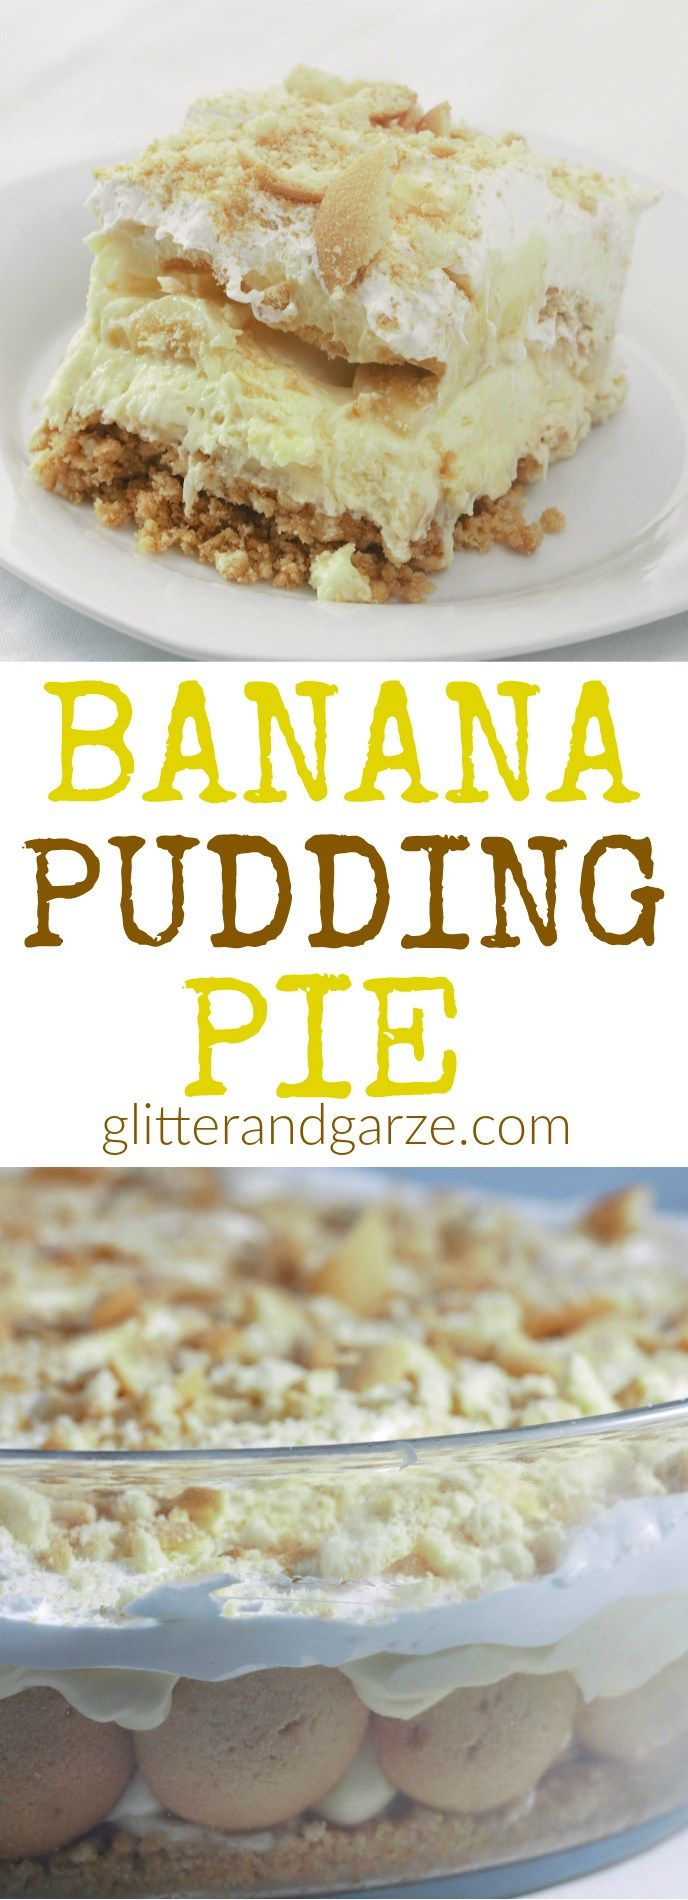 This no bake banana pudding pie is easy to make and is a great twist on a classic. This recipe is big enough to feed a crowd for your next get together.